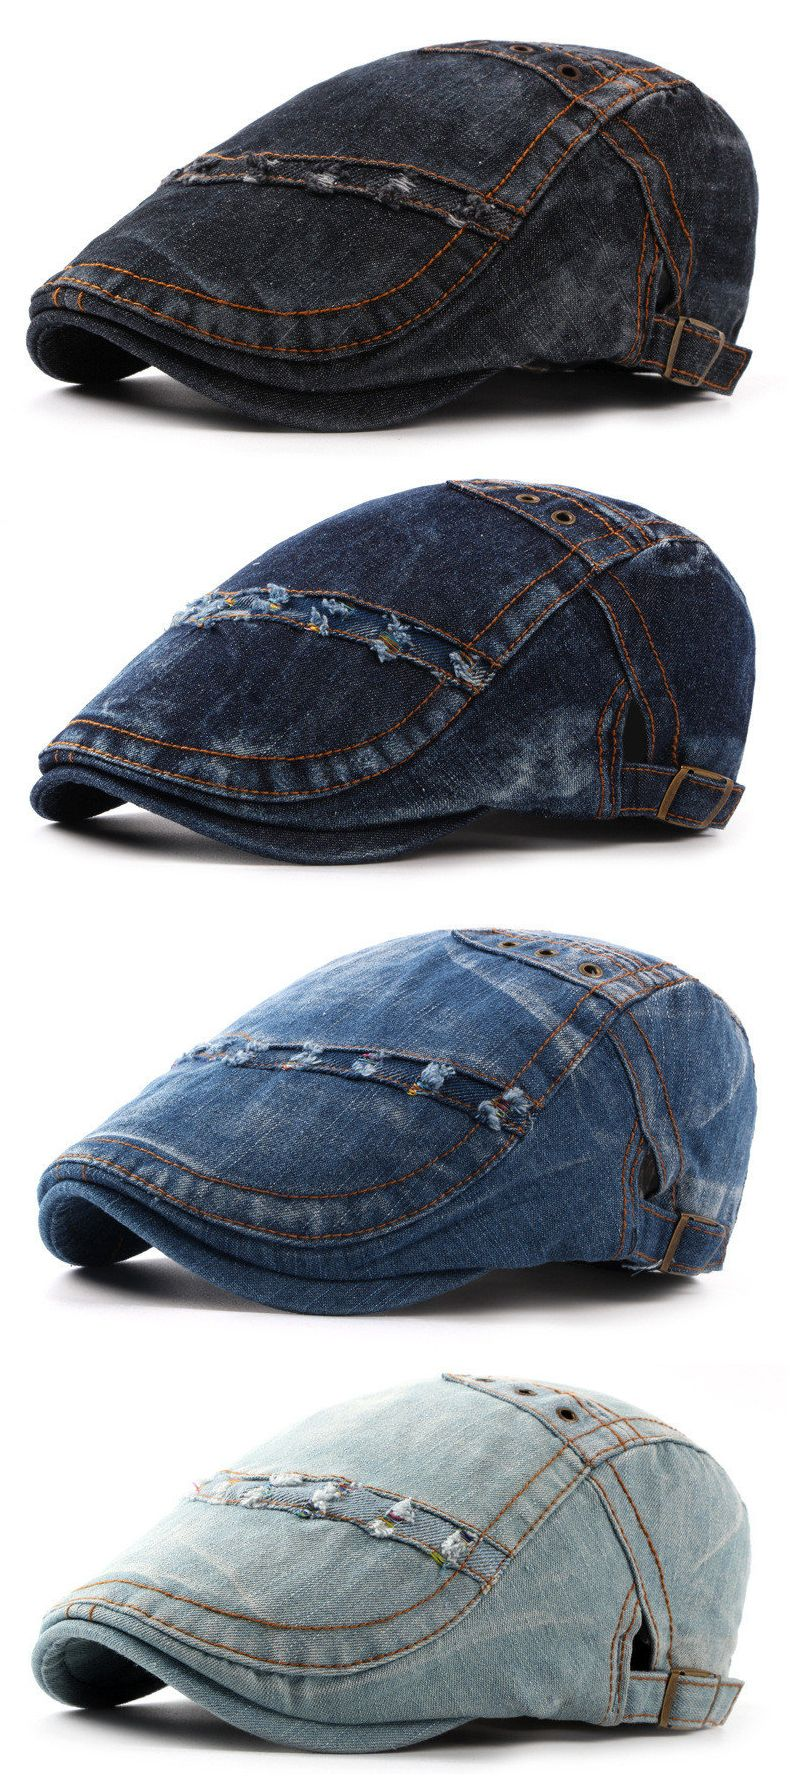 632d83c8db11d Mens Summer Denim Beret Caps Casual Fashion Visor Cowboy Hats Forward Hat  Adjustable